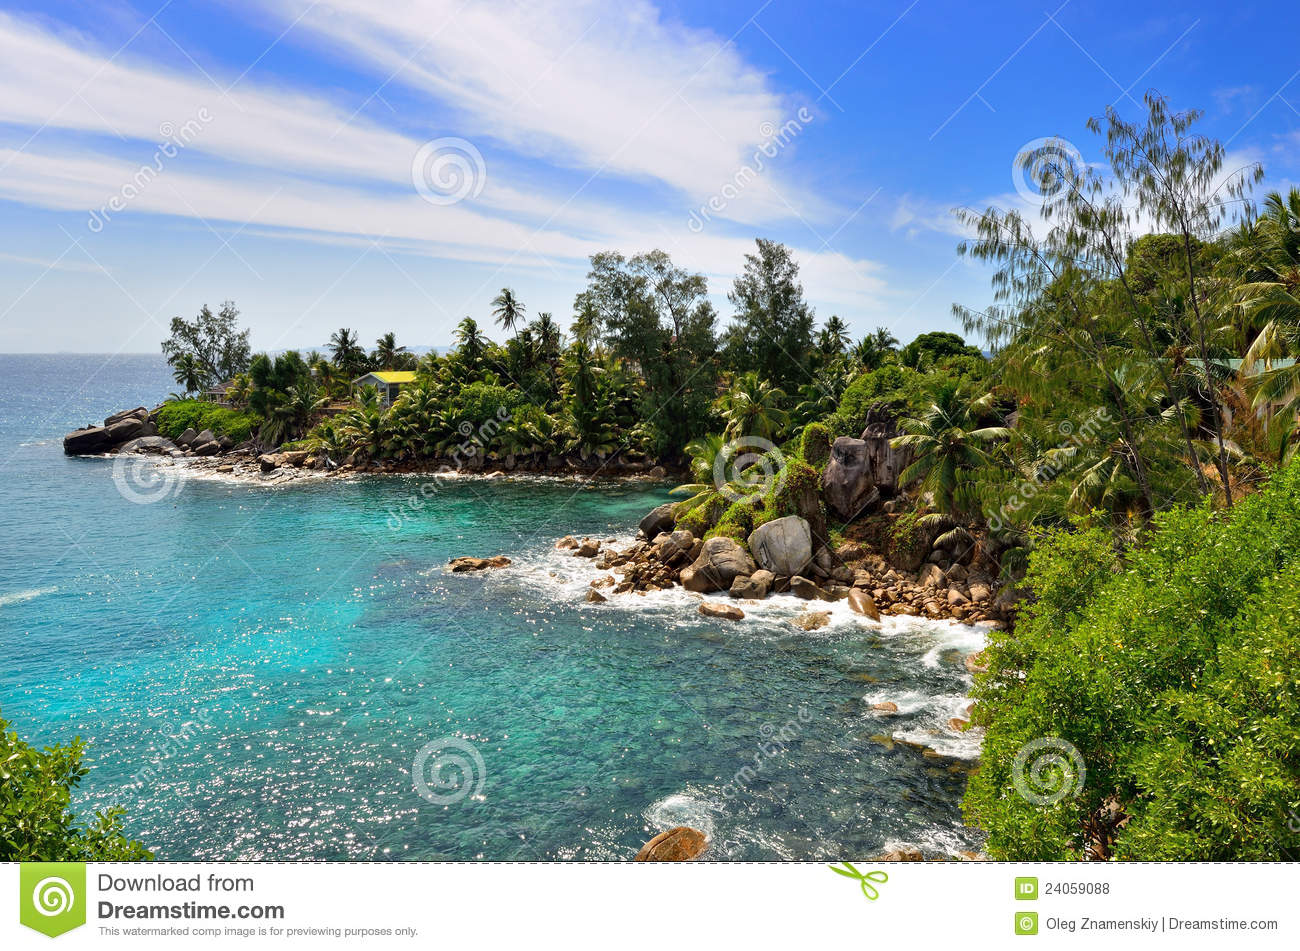 Seychelles Island clipart #11, Download drawings